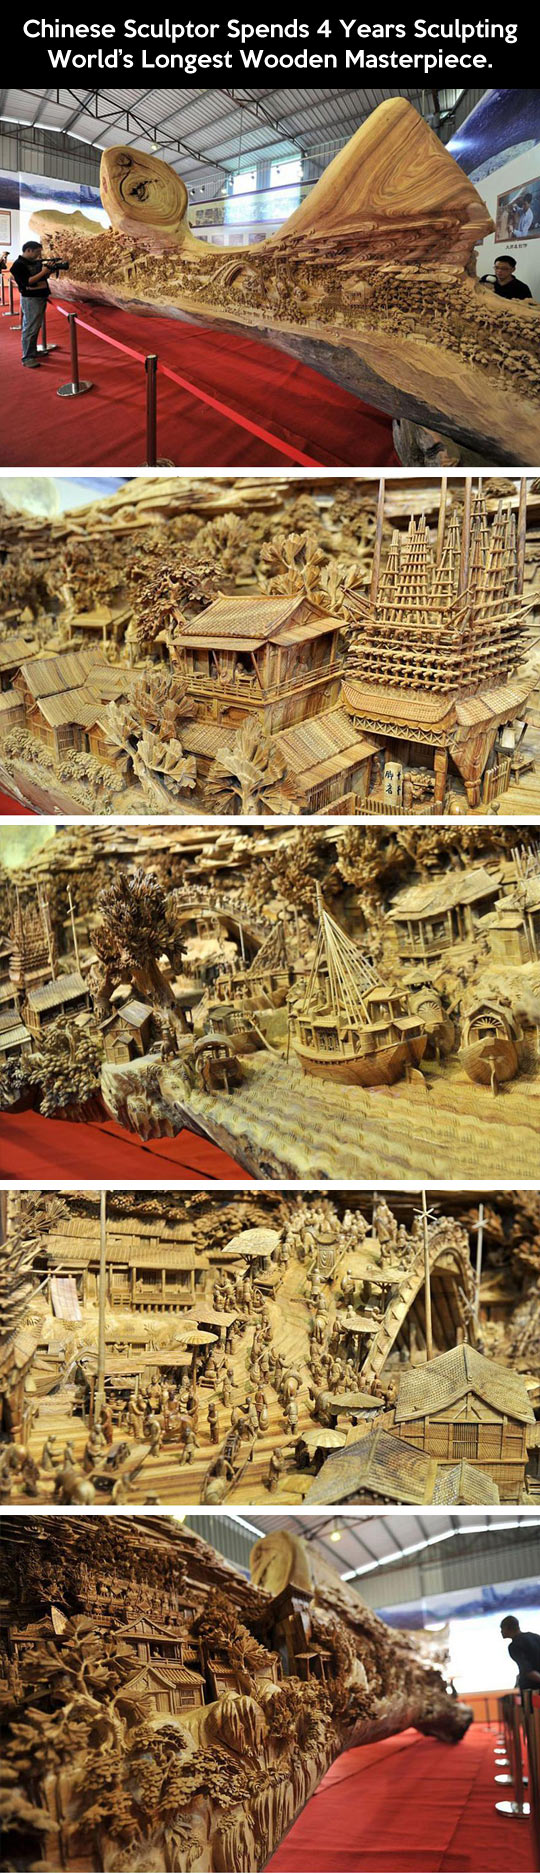 cool-carving-wood-art-museum-village-Asian